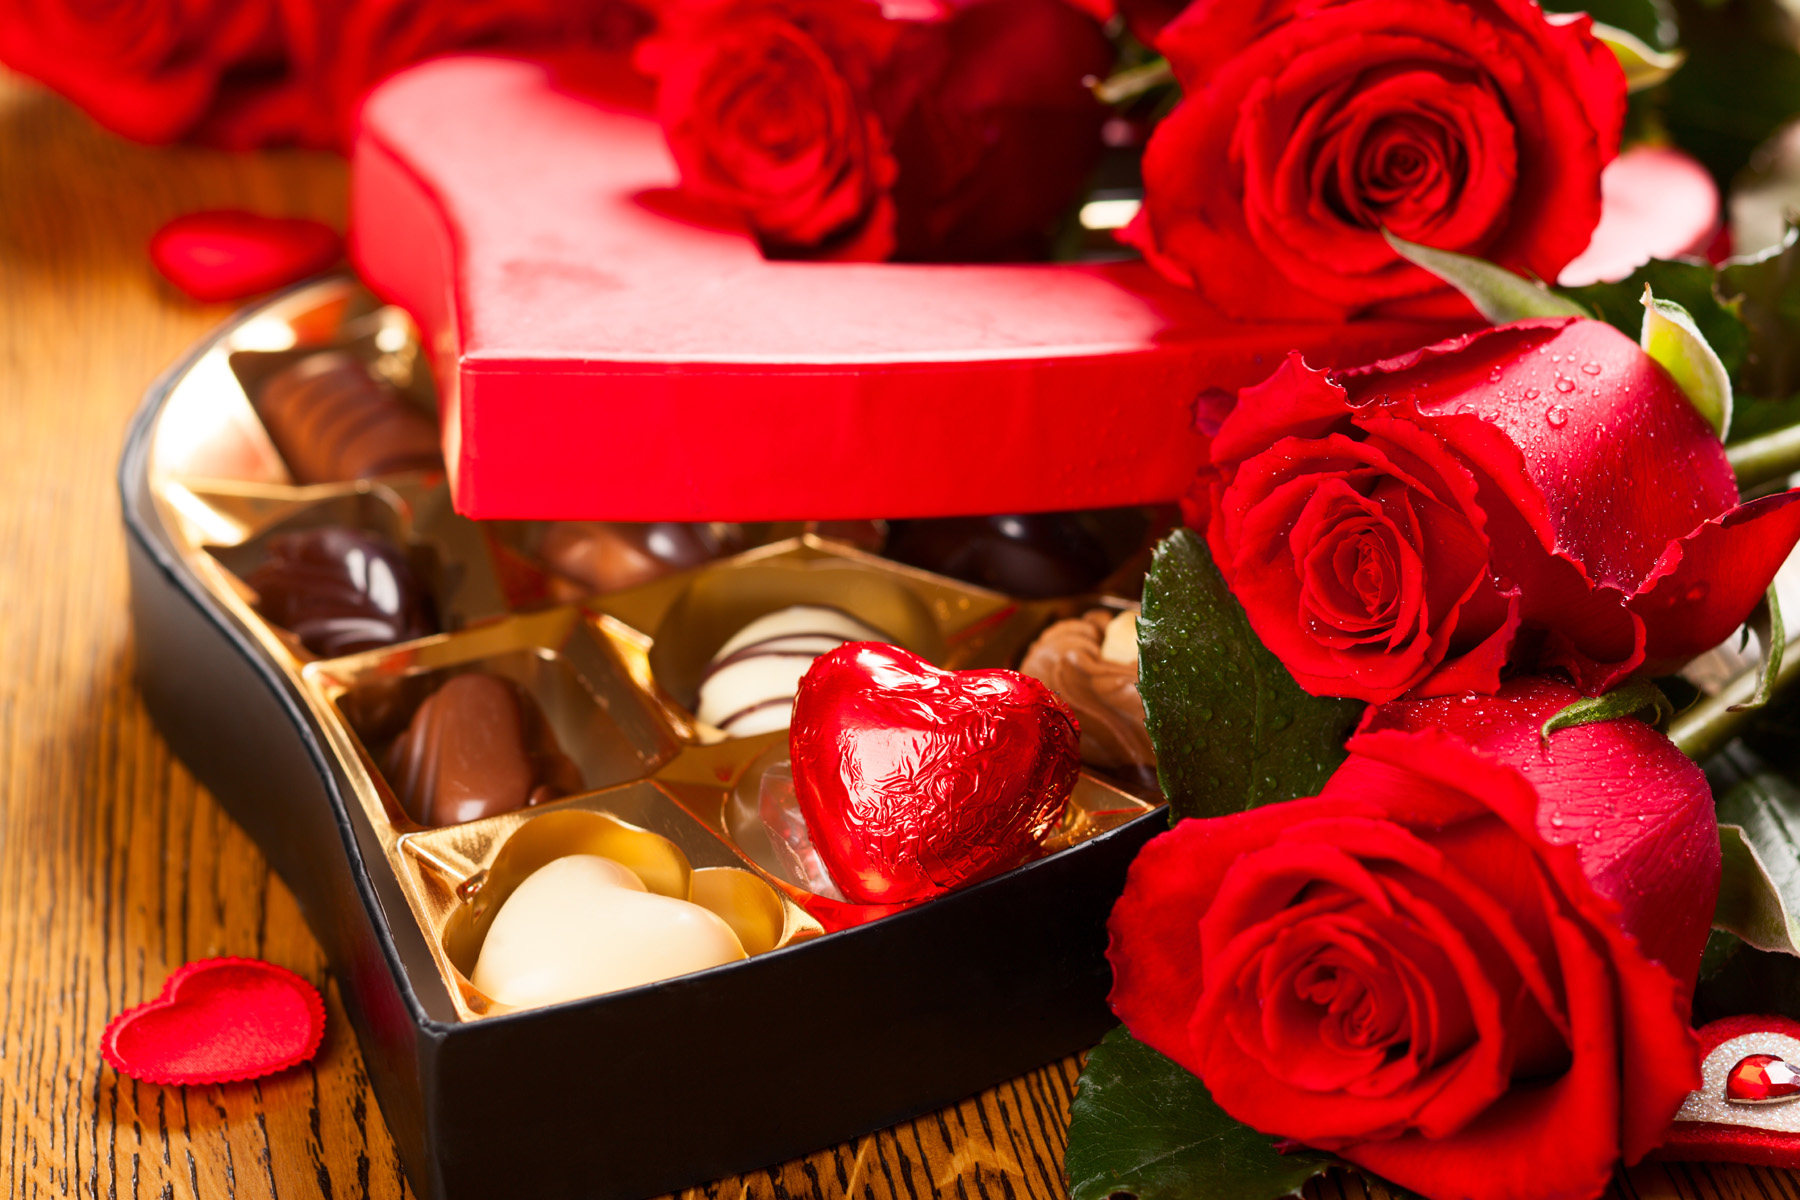 Red Rose And Chocolate Gift Box 51578 Flowers Gifts Festival